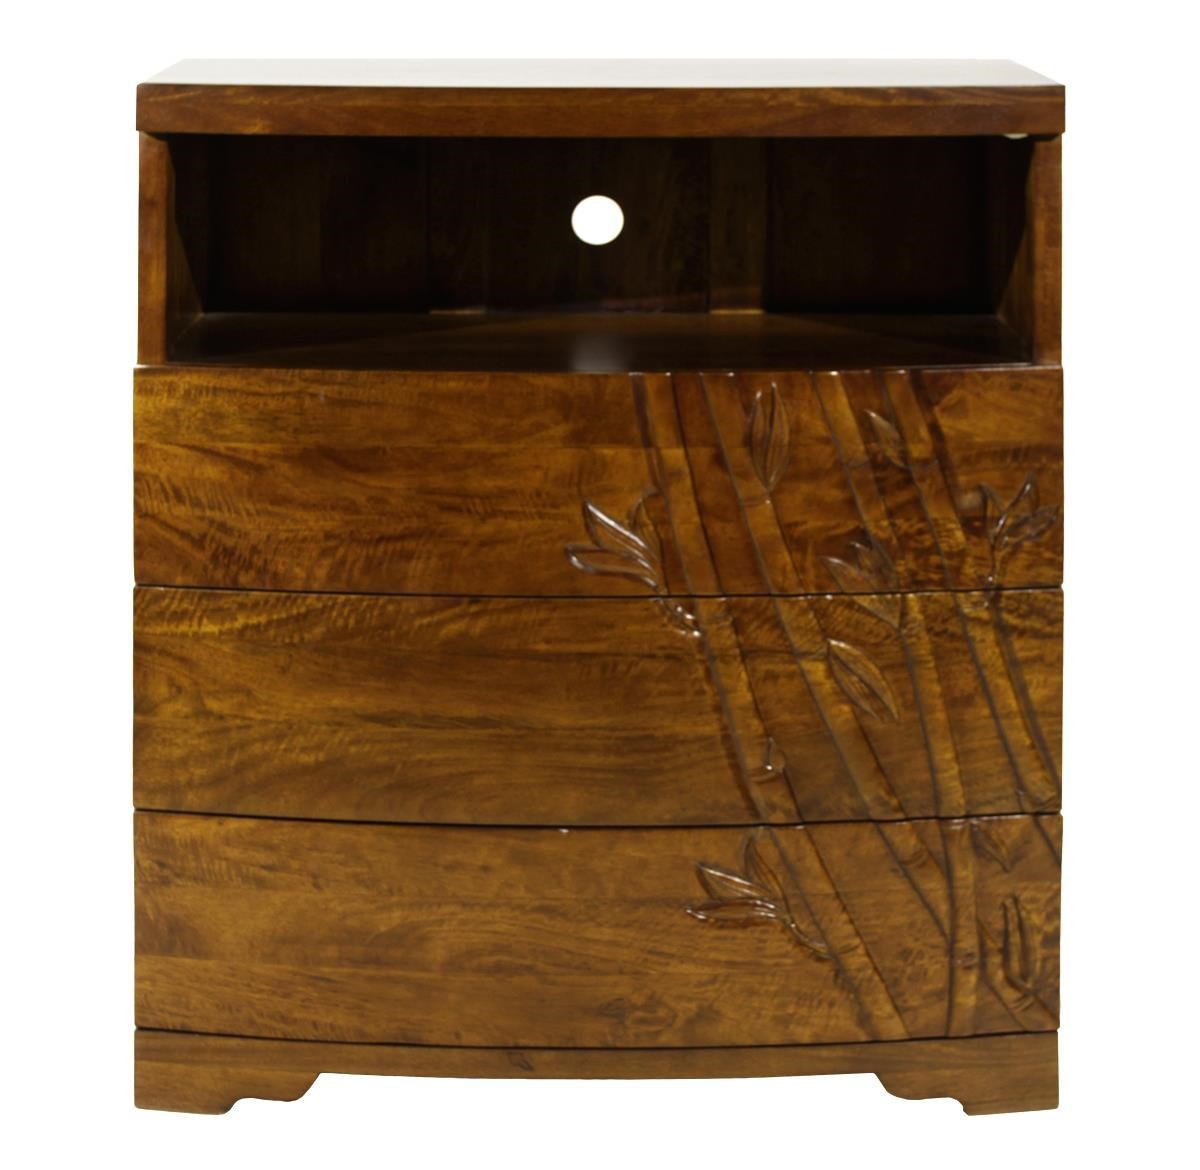 Jamieson Import Services, Inc. Foliage 3 Drawer Media Chest - Item Number: 3DRMEDBBMOA36